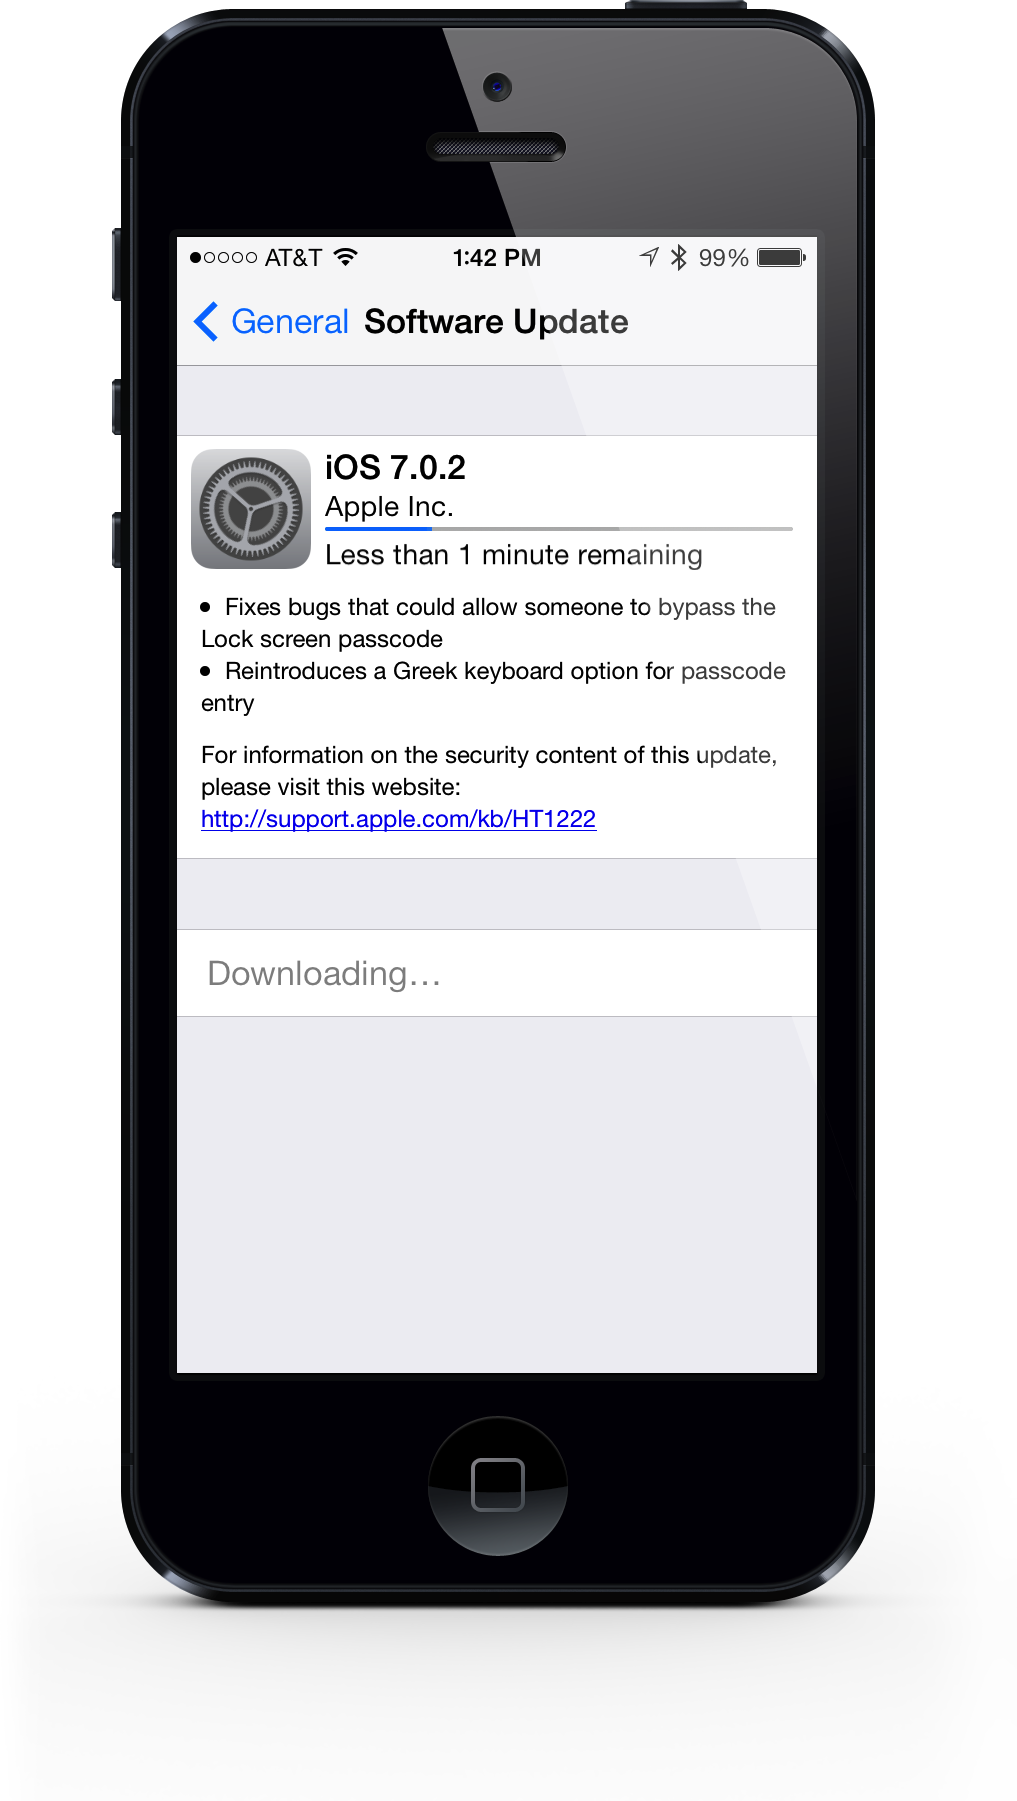 Apple Releases iOS 7.0.2 To Fix The Lock Screen Security Bug